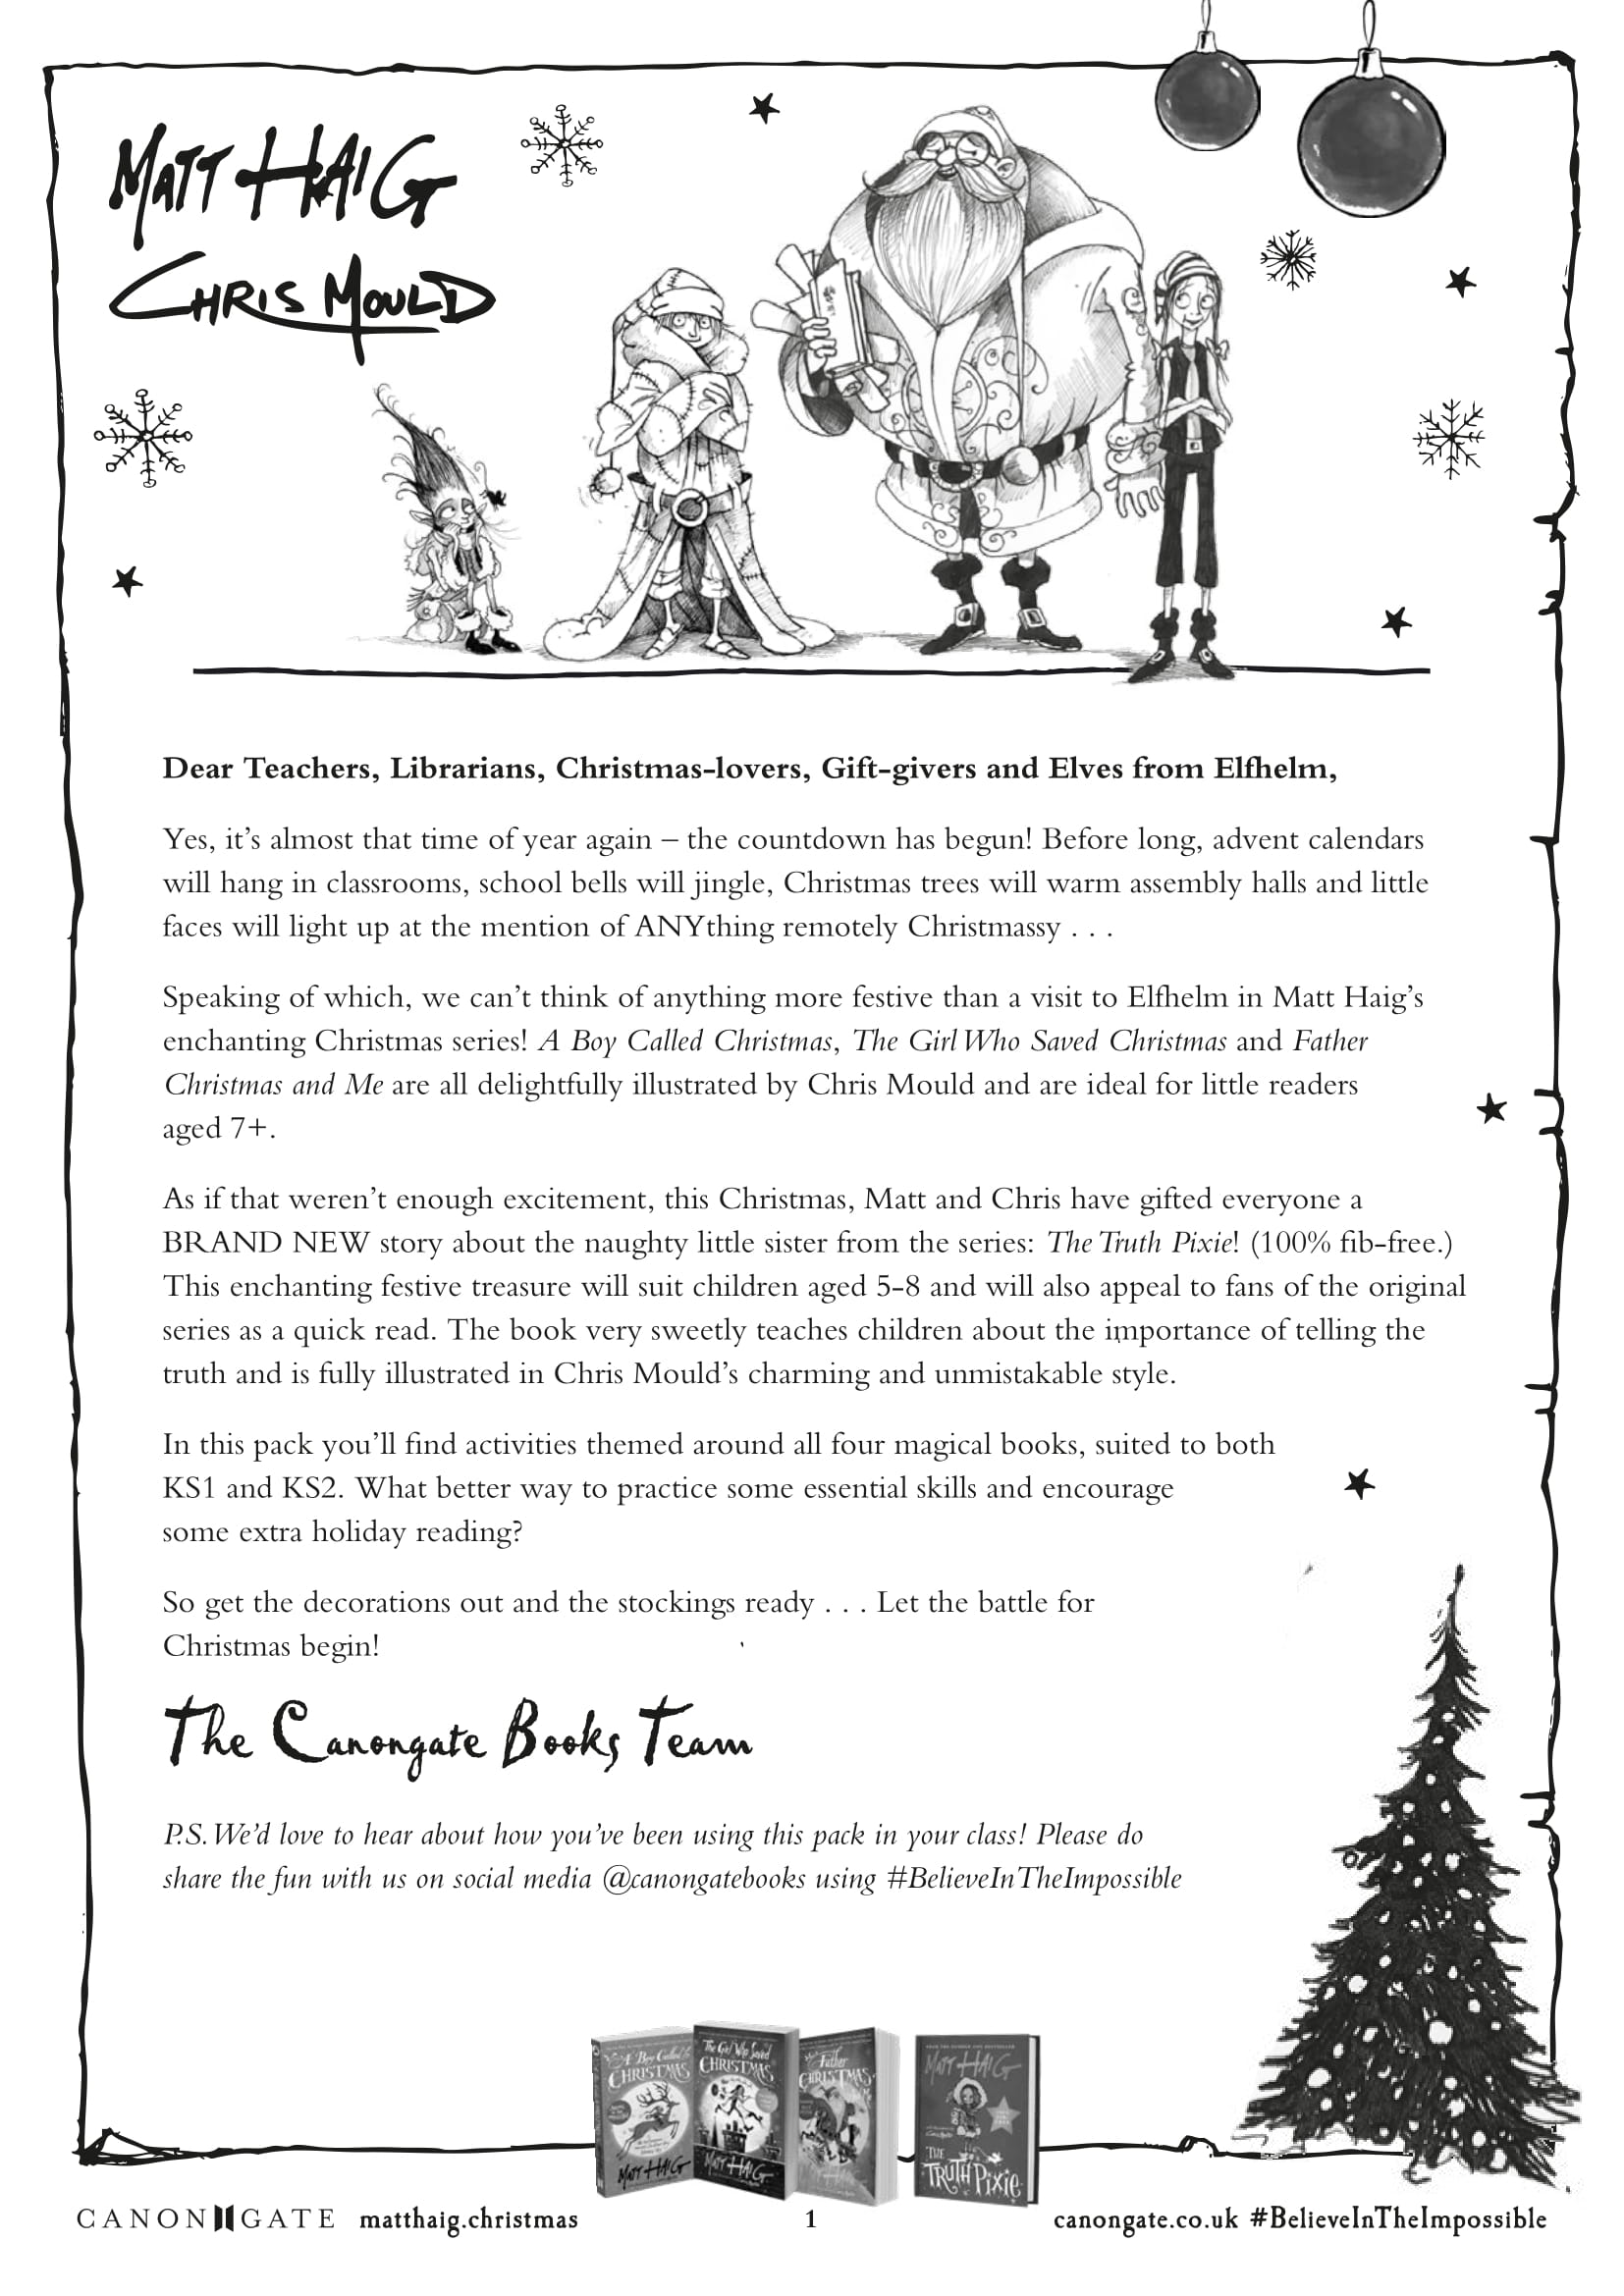 Matt Haig Christmas Resource pack_FINAL-01.jpg